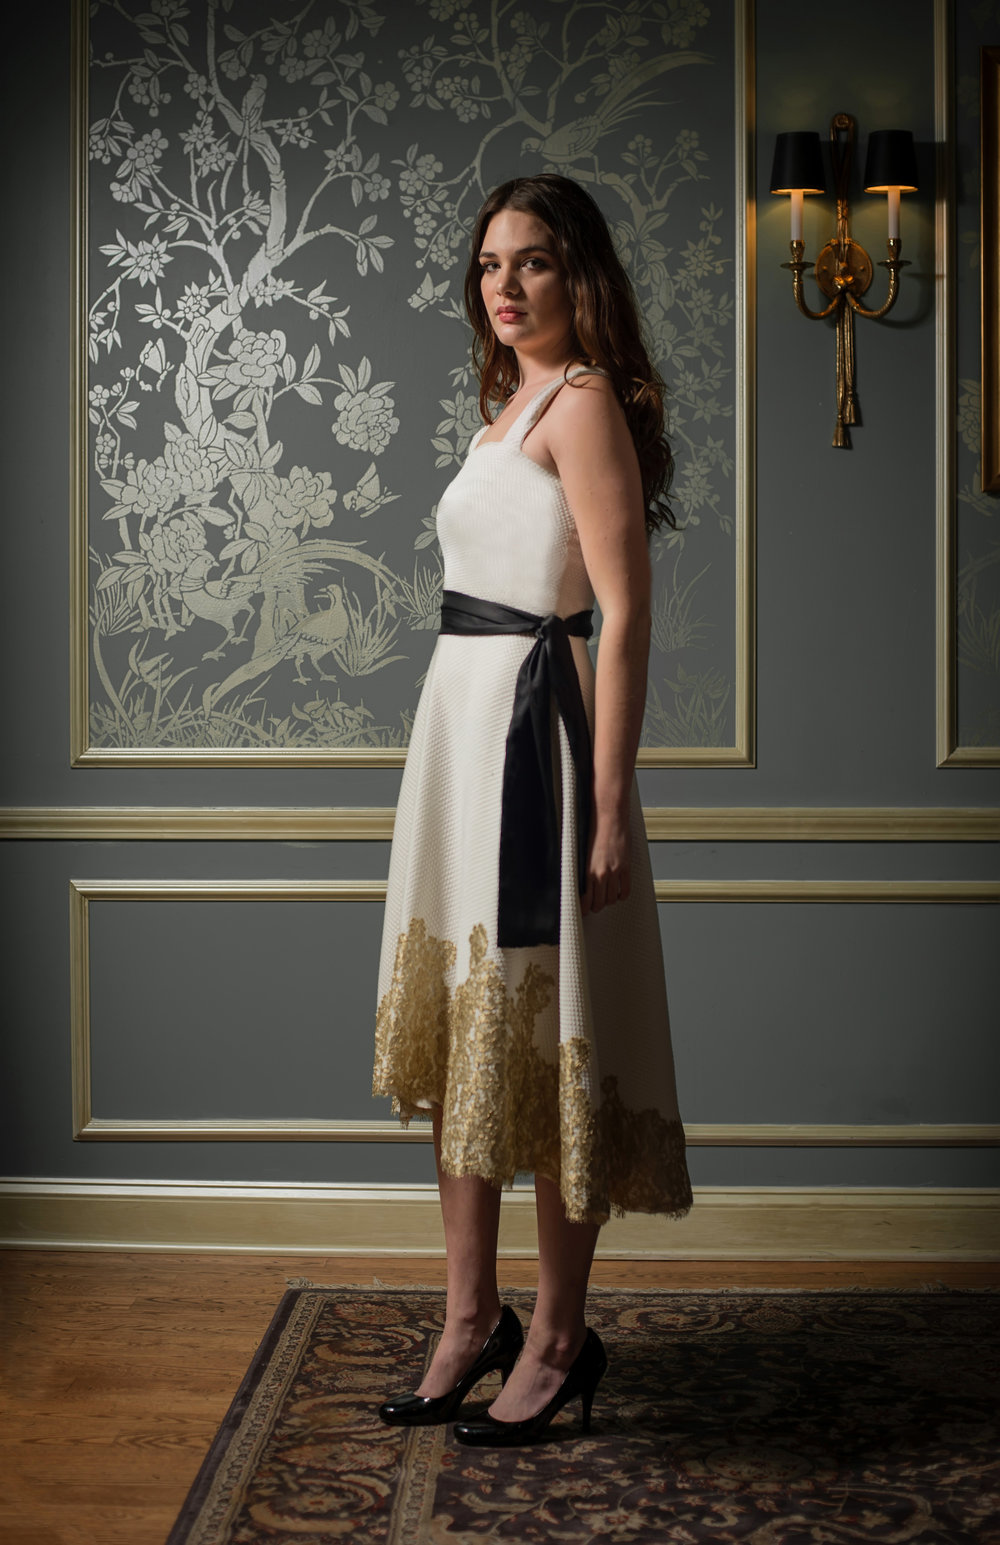 Pique with gold lace dress.jpg